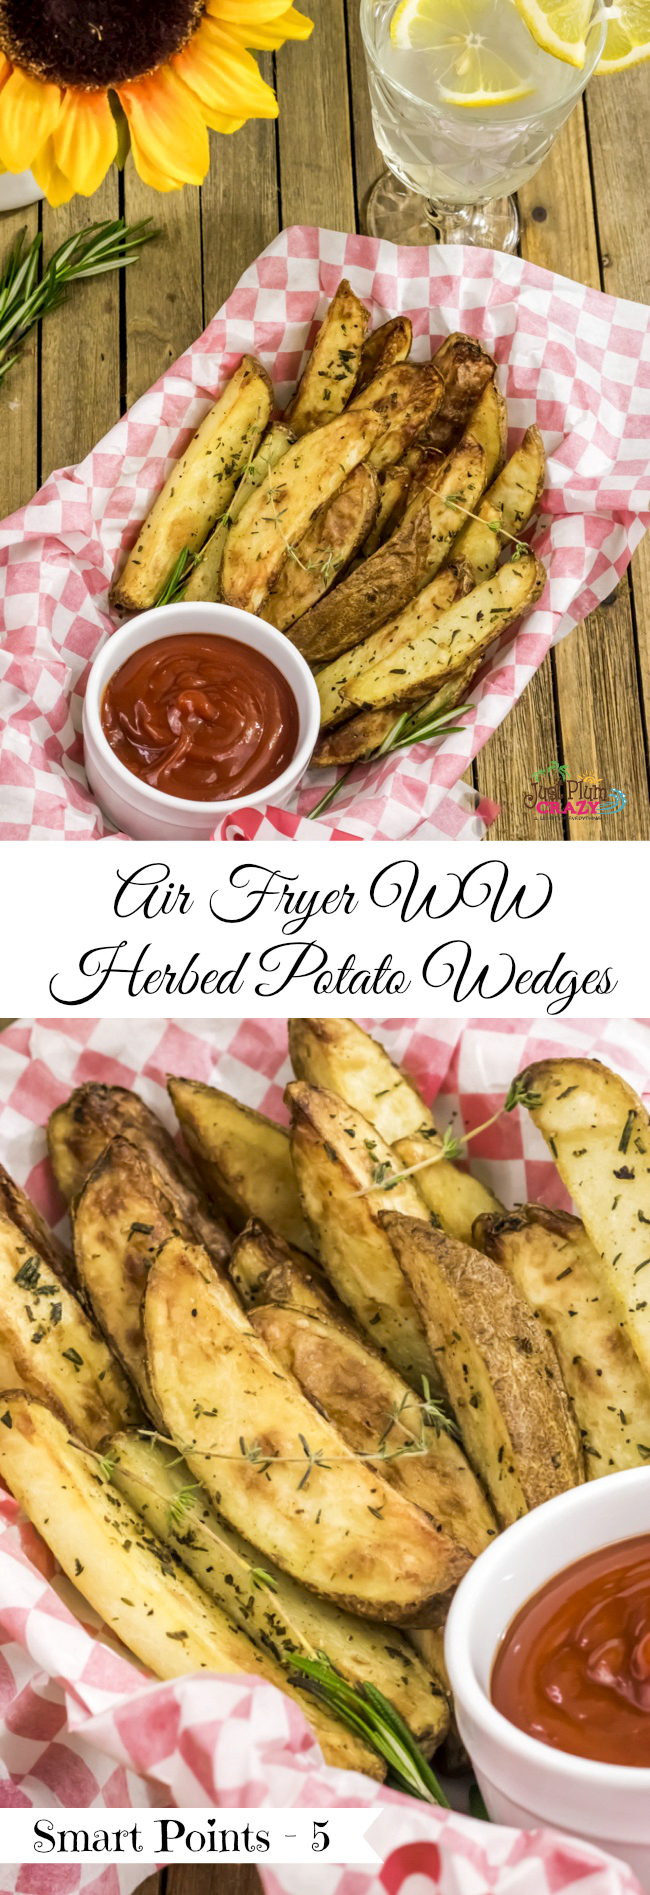 The Air Fryer Herbed Crispy Skin Potato Wedges Recipe is only 5 WW Smart Points and is great because you can still stay on program and eat foods you love!